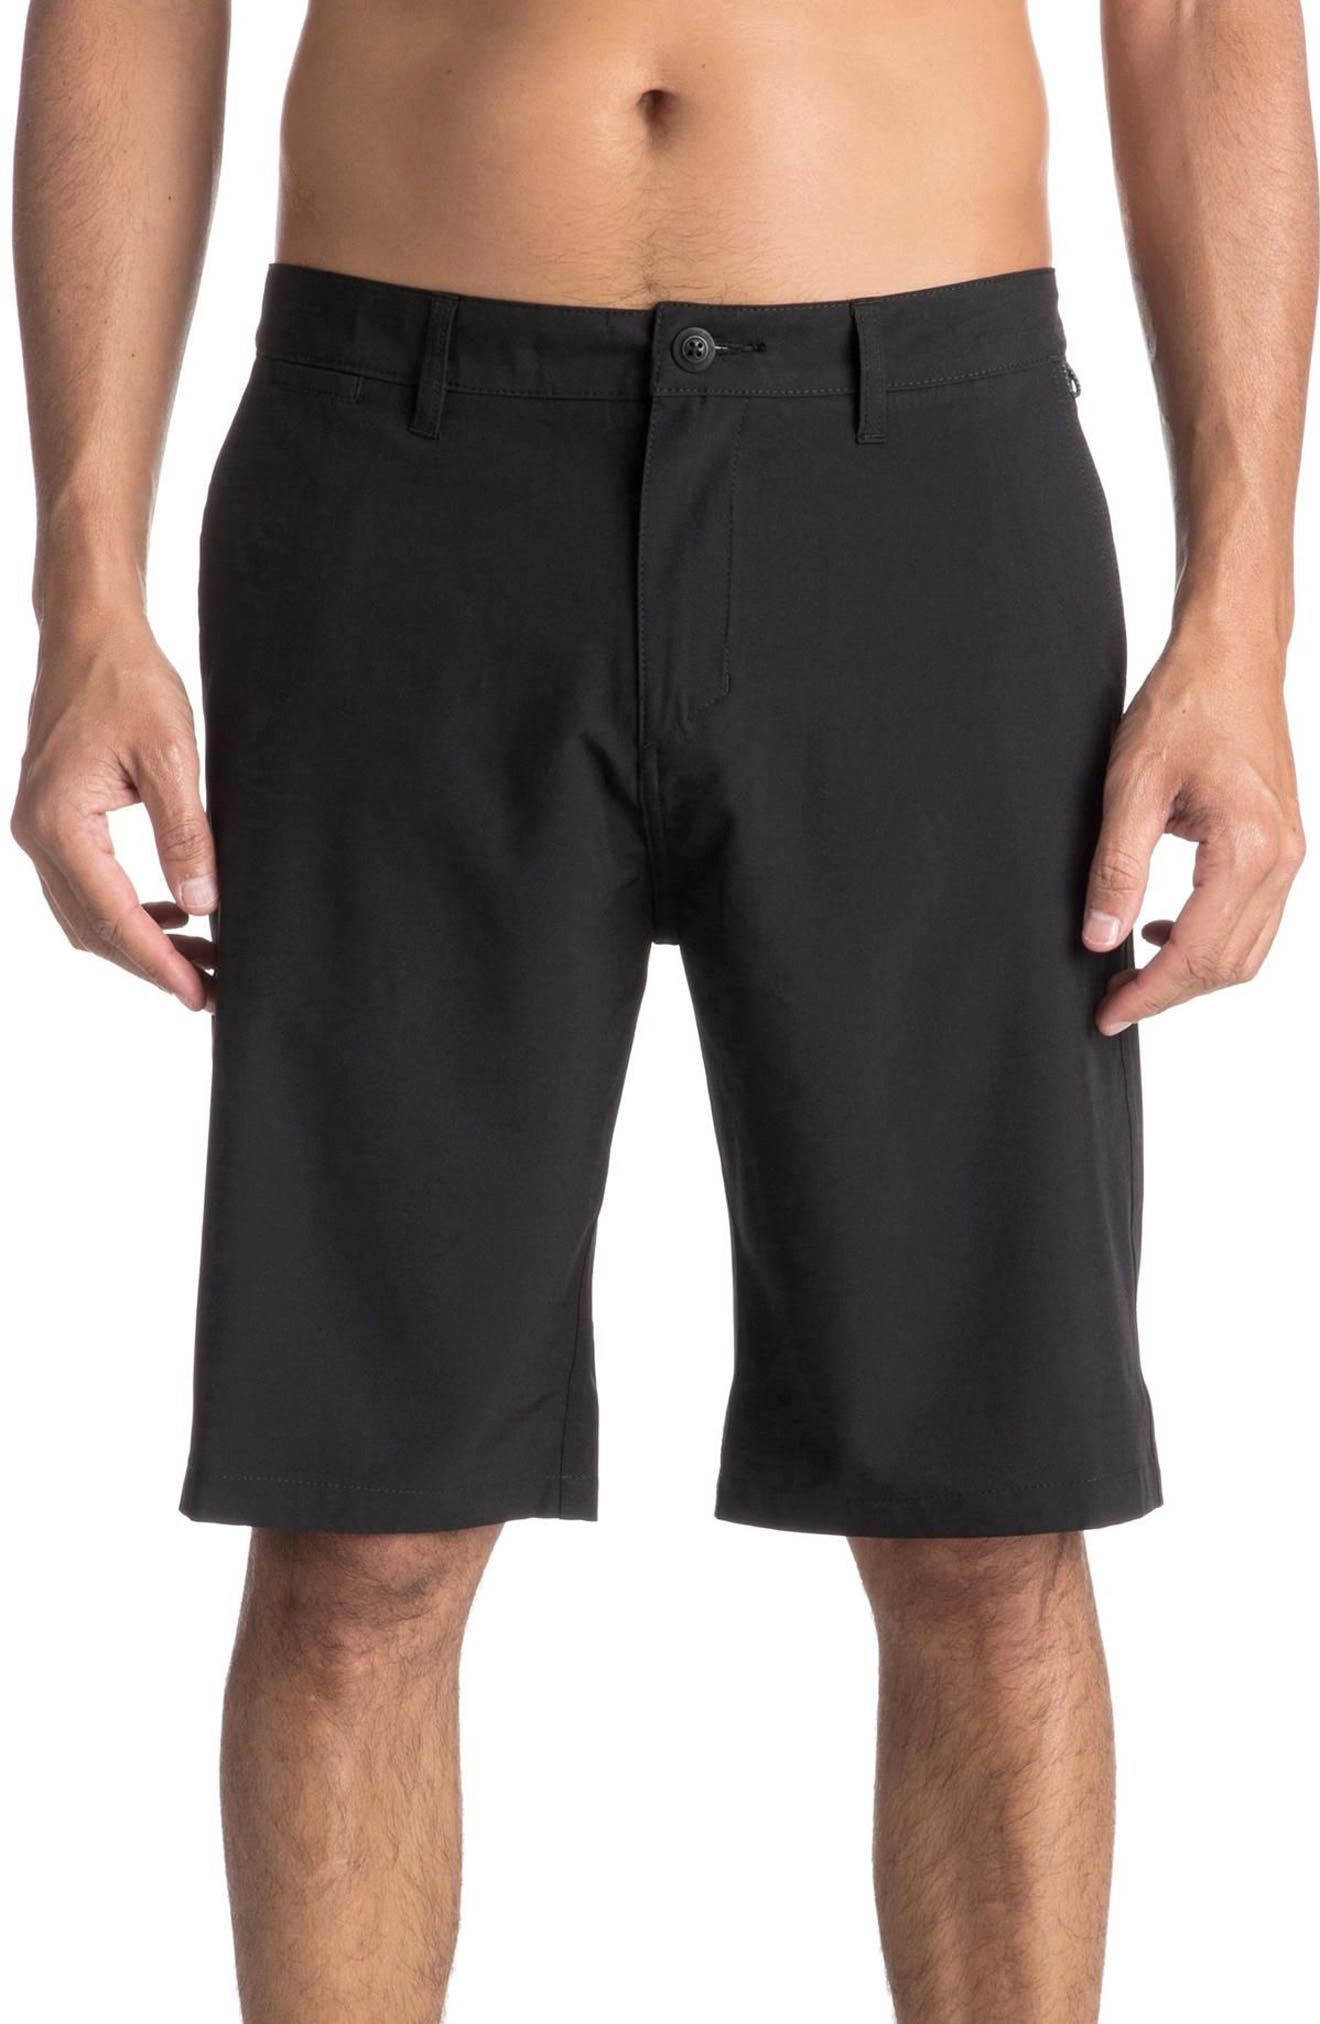 Union Amphibian Shorts,                             Main thumbnail 1, color,                             002